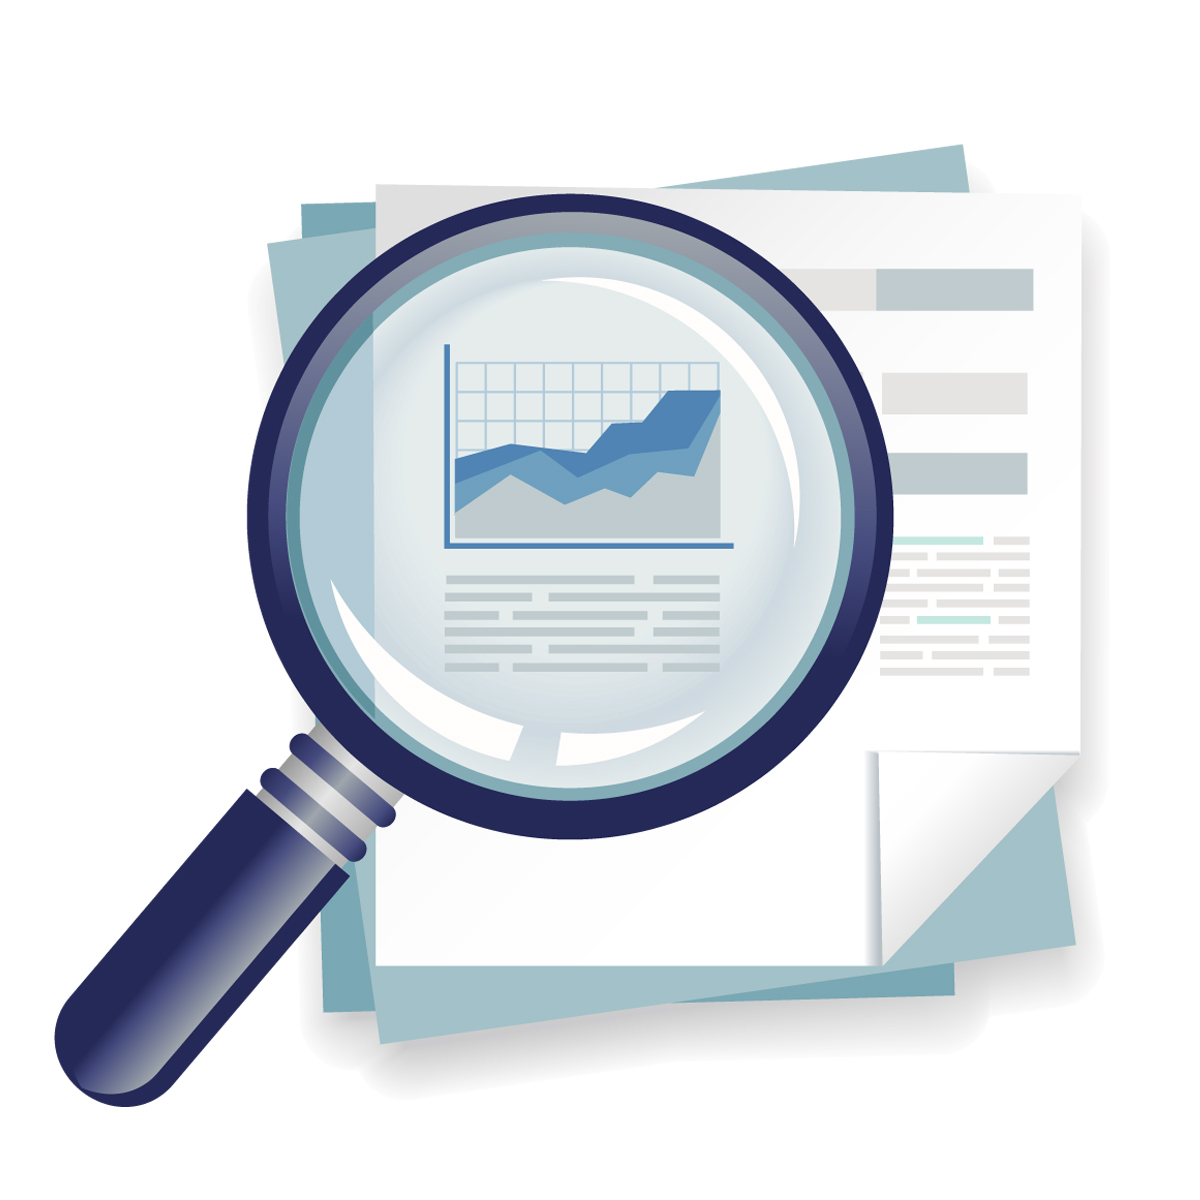 Extend Reporting Possibilities With Search Functions